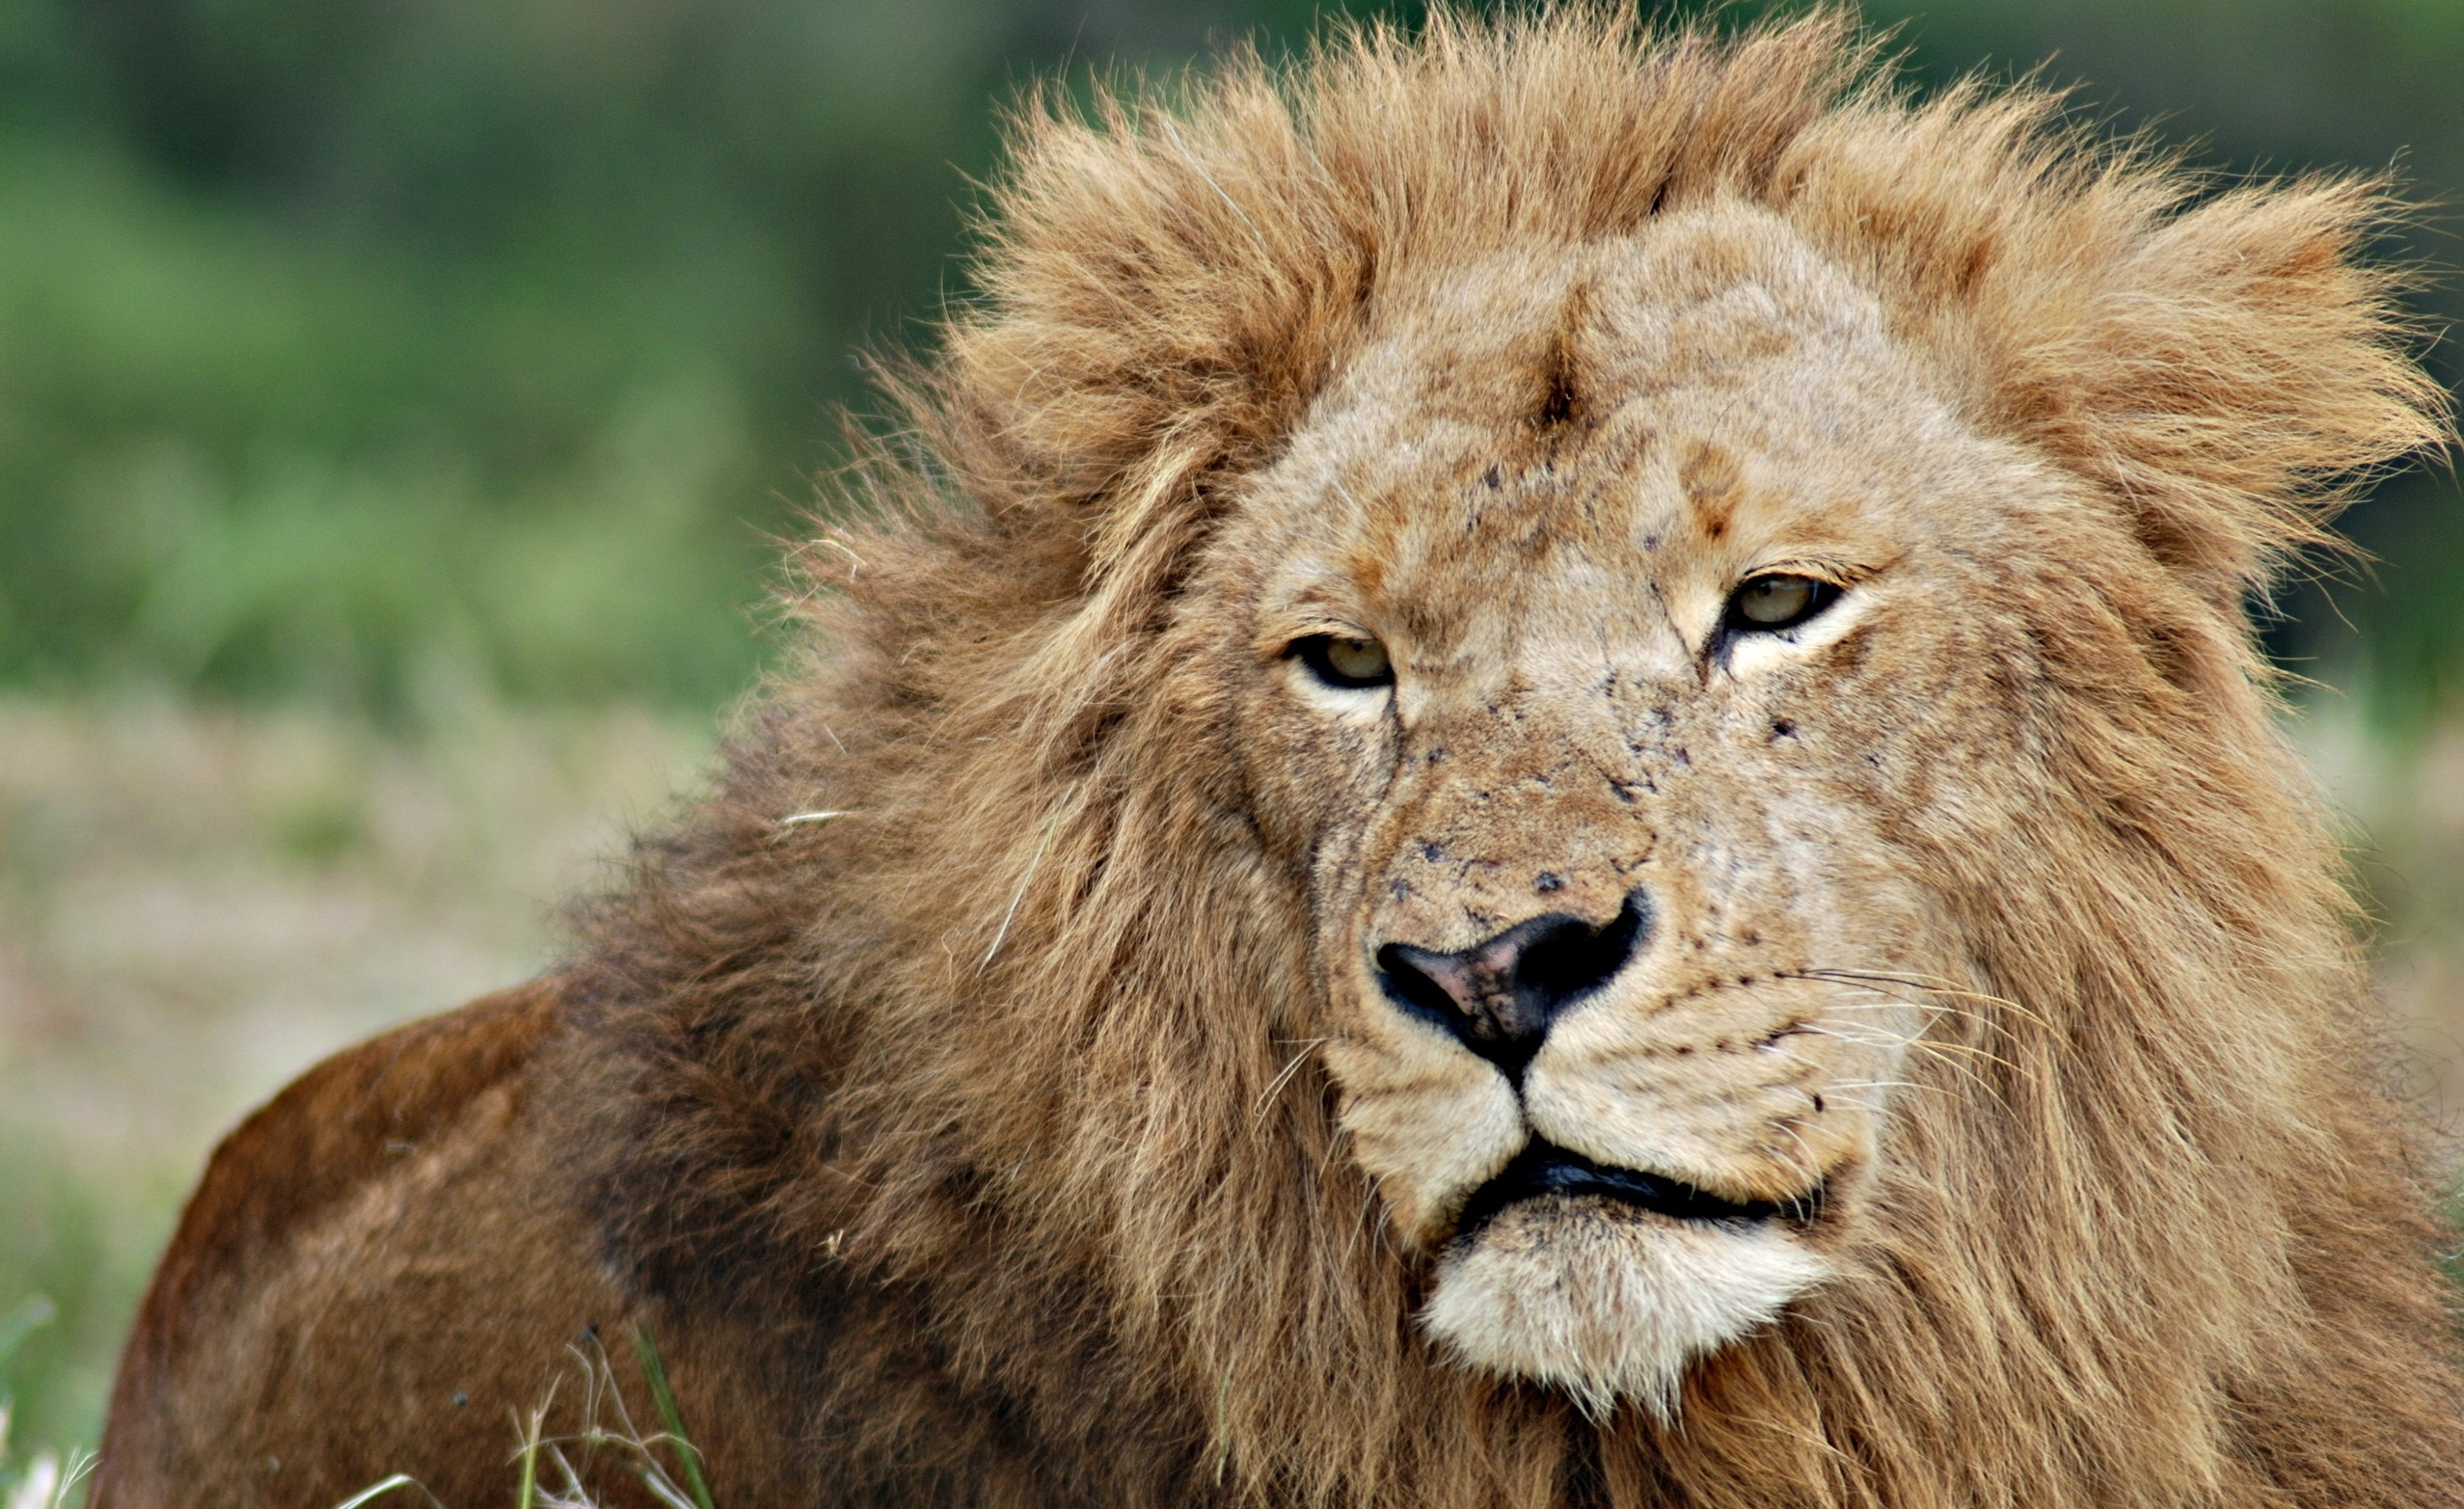 96304 download wallpaper Animals, Lion, Muzzle, Mane, Sight, Opinion, King Of Beasts, King Of The Beasts screensavers and pictures for free